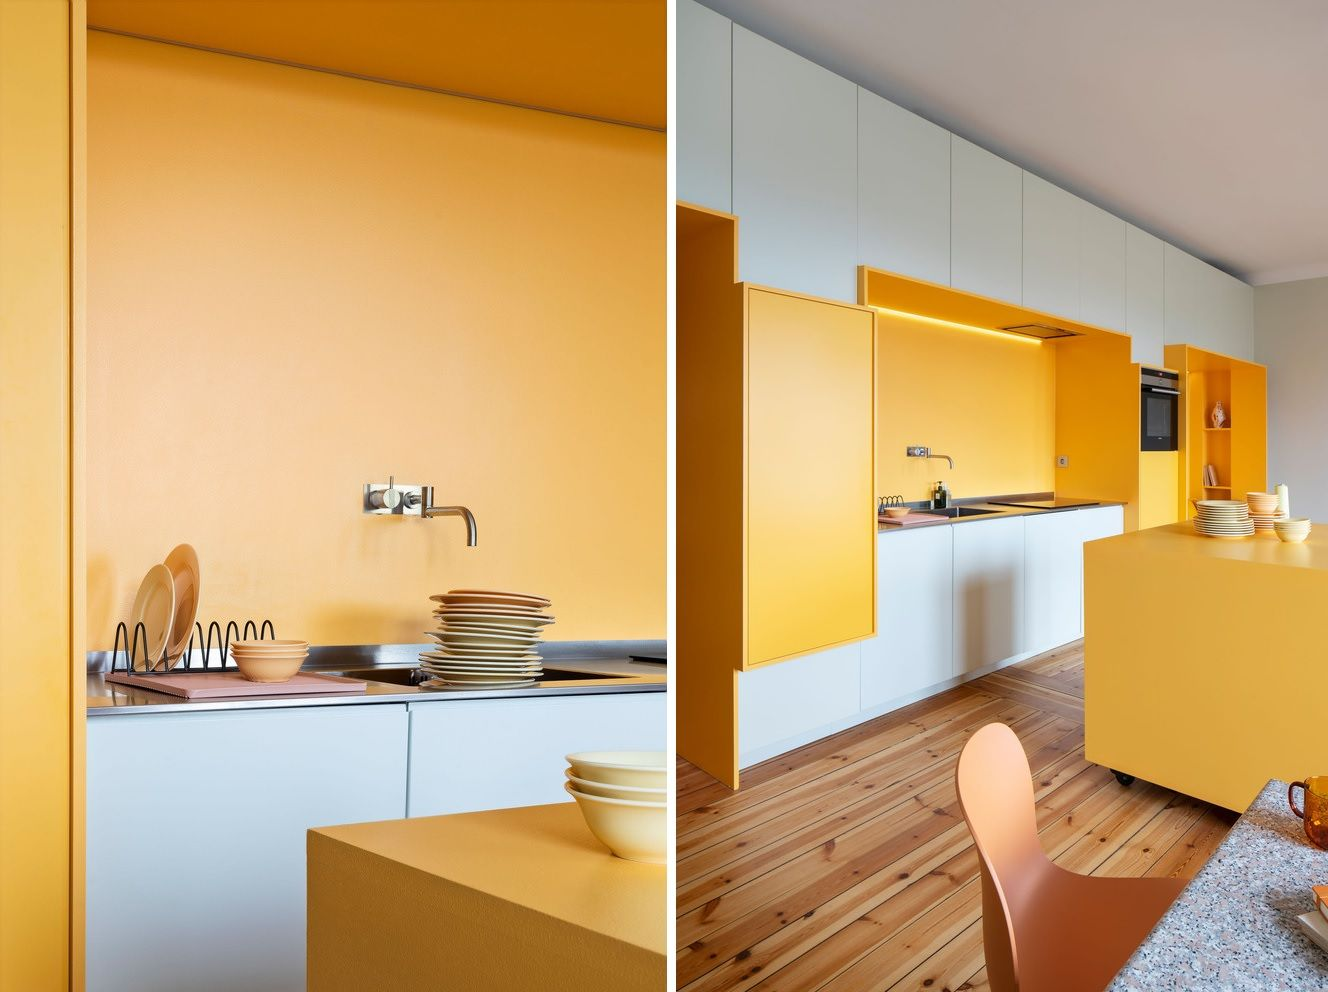 In addition to having a cheerful and welcoming vibe, the apartment is also very bright and airy